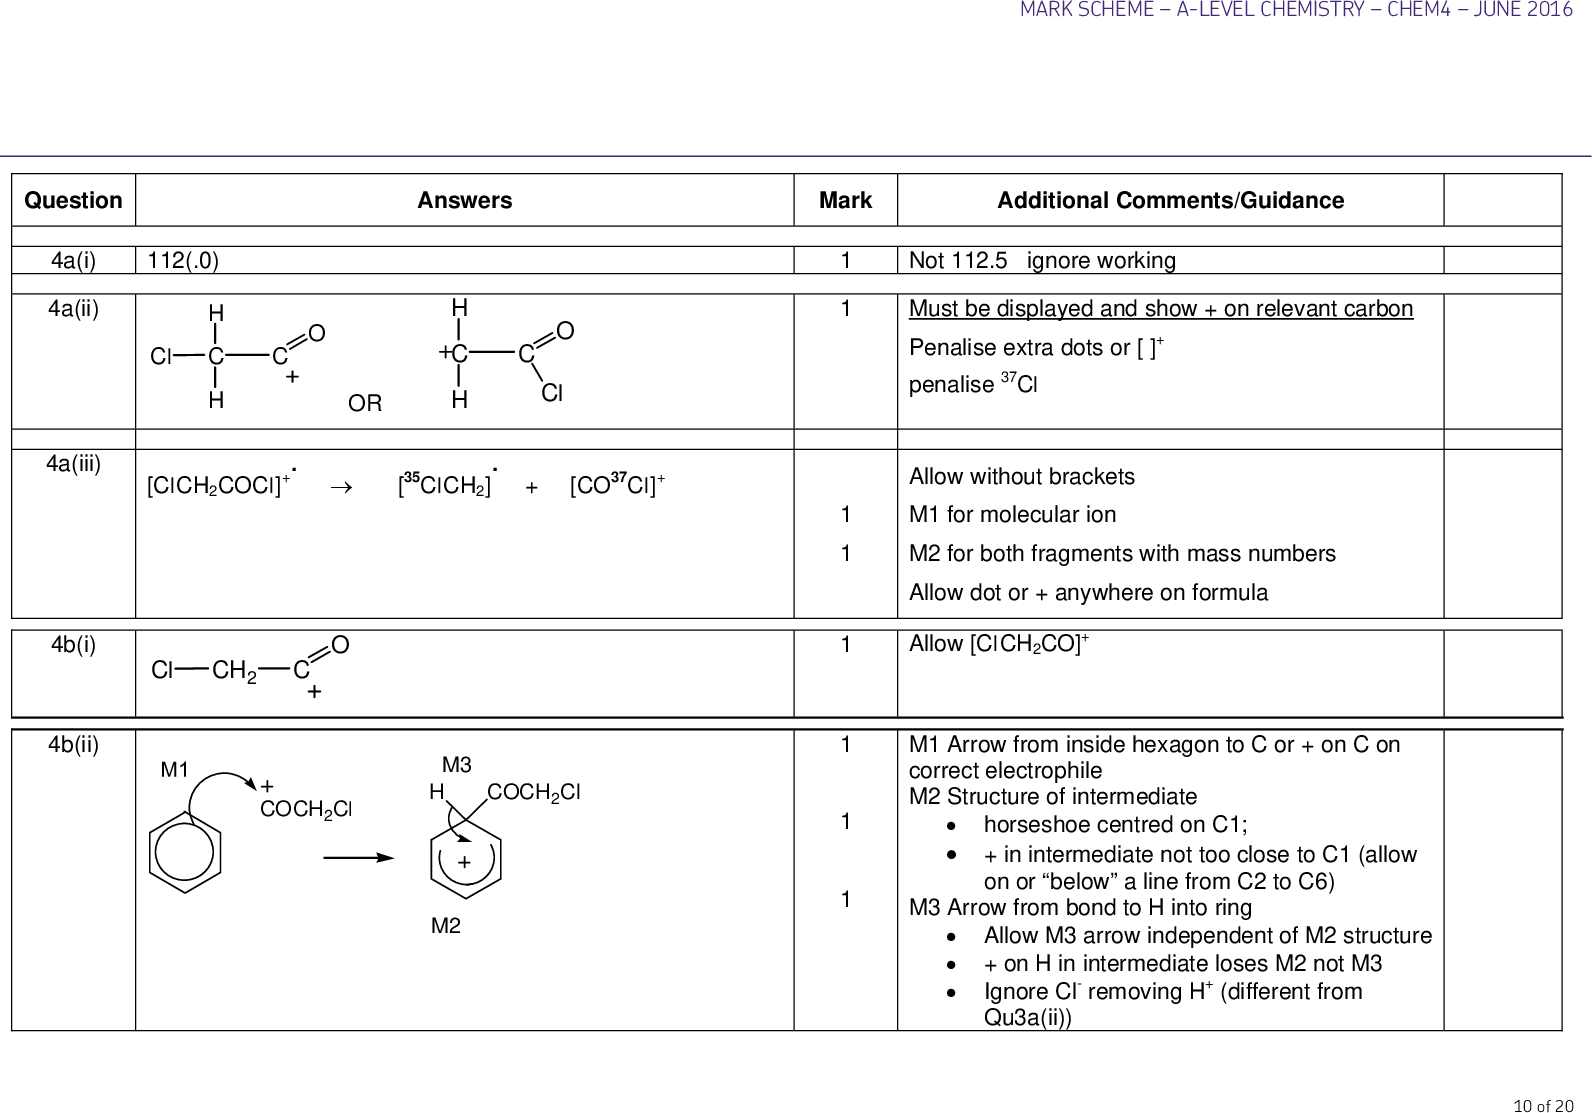 answers mark additional comments guidance question a i a ii cl h c h or h c h cl a iii b i b ii clch cocl clch co cl cl ch m coch cl m h coch cl m mark scheme a level chemistry chem june not ignore working must be displayed and show on relevant carbon penalise extra dots or penalise cl allow without brackets m for molecular ion m for both fragments with mass numbers allow dot or anywhere on formula allow clch co m arrow from inside hexagon to c or on c on correct electrophile m structure of intermediate horseshoe centred on c in intermediate not too close to c allow on or below a line from c to c m arrow from bond to h into ring allow m arrow independent of m structure on h in intermediate loses m not m ignore cl removing h different from qu a ii of c d i water reag ent aqueous silver nitrate no reaction steamy misty white fumes no reaction or slow formation of ppt white precipitate immediately formed naoh followed by acidified silver nitrate no reaction or slow formation of ppt white precipitate immediately formed water named indicator no colour change nvc nvc indicator turns to correct acid colour fruity or sweet smell or misty fumes fizzing or effervescence not just gas produced mark scheme a level chemistry chem june named alcohol na co or nahco ammonia o ch c o or ch or ch one unit only must have trailing bonds ignore n and brackets allow o ch co d ii h c e i ch ch ch ch allow co for c o one unit only must have trailing bonds ignore n and brackets no reaction do not award no observation white smoke of mark scheme a level chemistry chem june pga sutures react dissolve break down are biodegradable are hydrolysed attacked by water or nucleophiles no need to remove ester links have polar bonds answers h n o c ch c h n h h c h c o or o c h c ch n h h c h h n c o h c h o c n h n h c o h c h o c h n h c ch h n ch c h c o or polypropene not biodegradeable not hydrolysed not attacked by water nucleophiles polypropene contains non polar bonds ignore intermolecular forces id details mark additional comments guidance only one molecule of each used m for amide links m ch and ch ch allow mark after one error dipeptide max treat both trailing bonds missing as one error ignore n of e ii total question a i